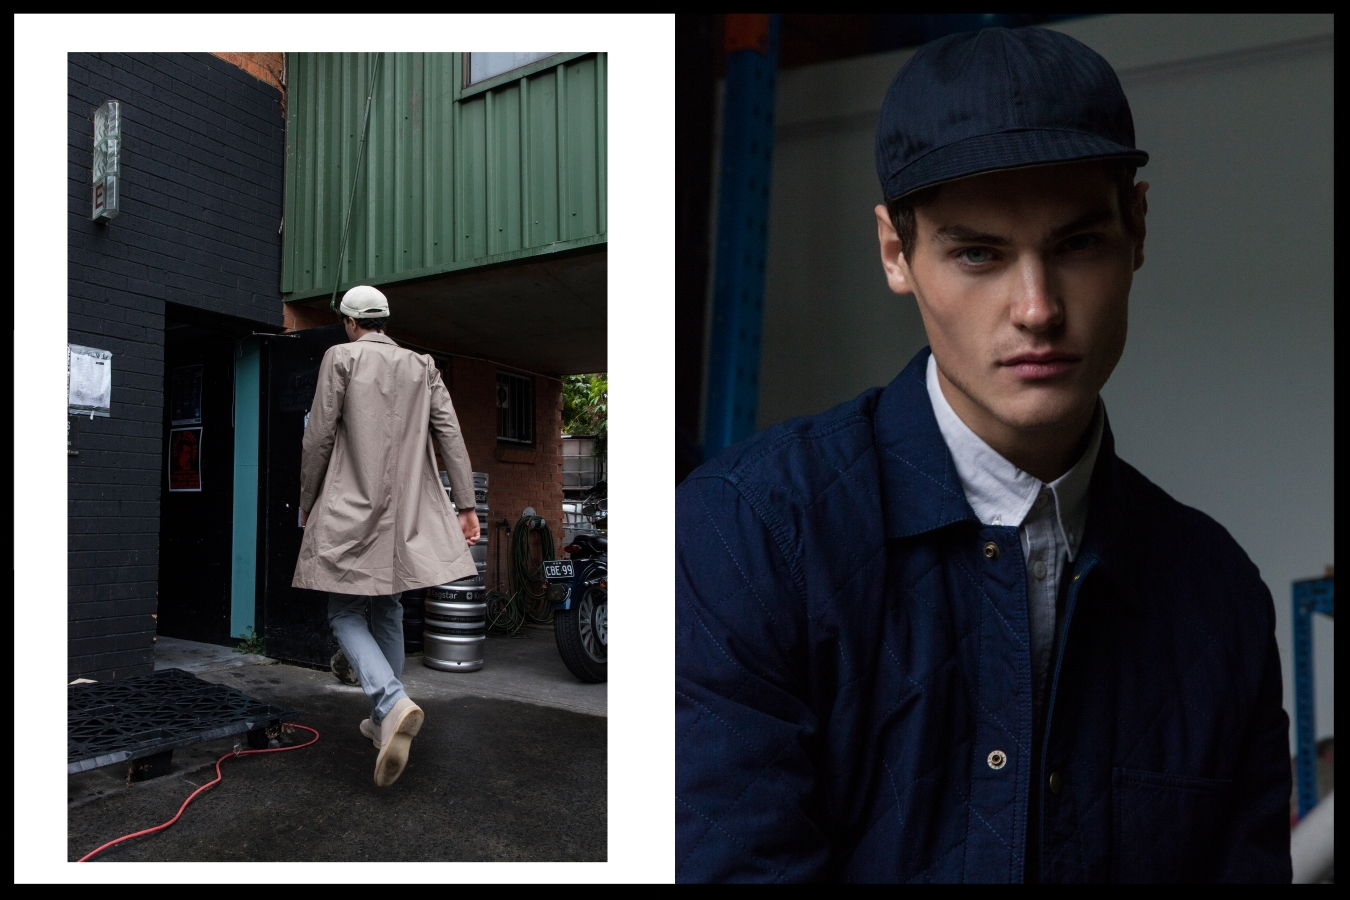 Left: Stutterheim mac, APC jeans, Clarks boots, stylist's own hat, Right: APC jacket, Fillipa K shirt, Troy O'Shea hat